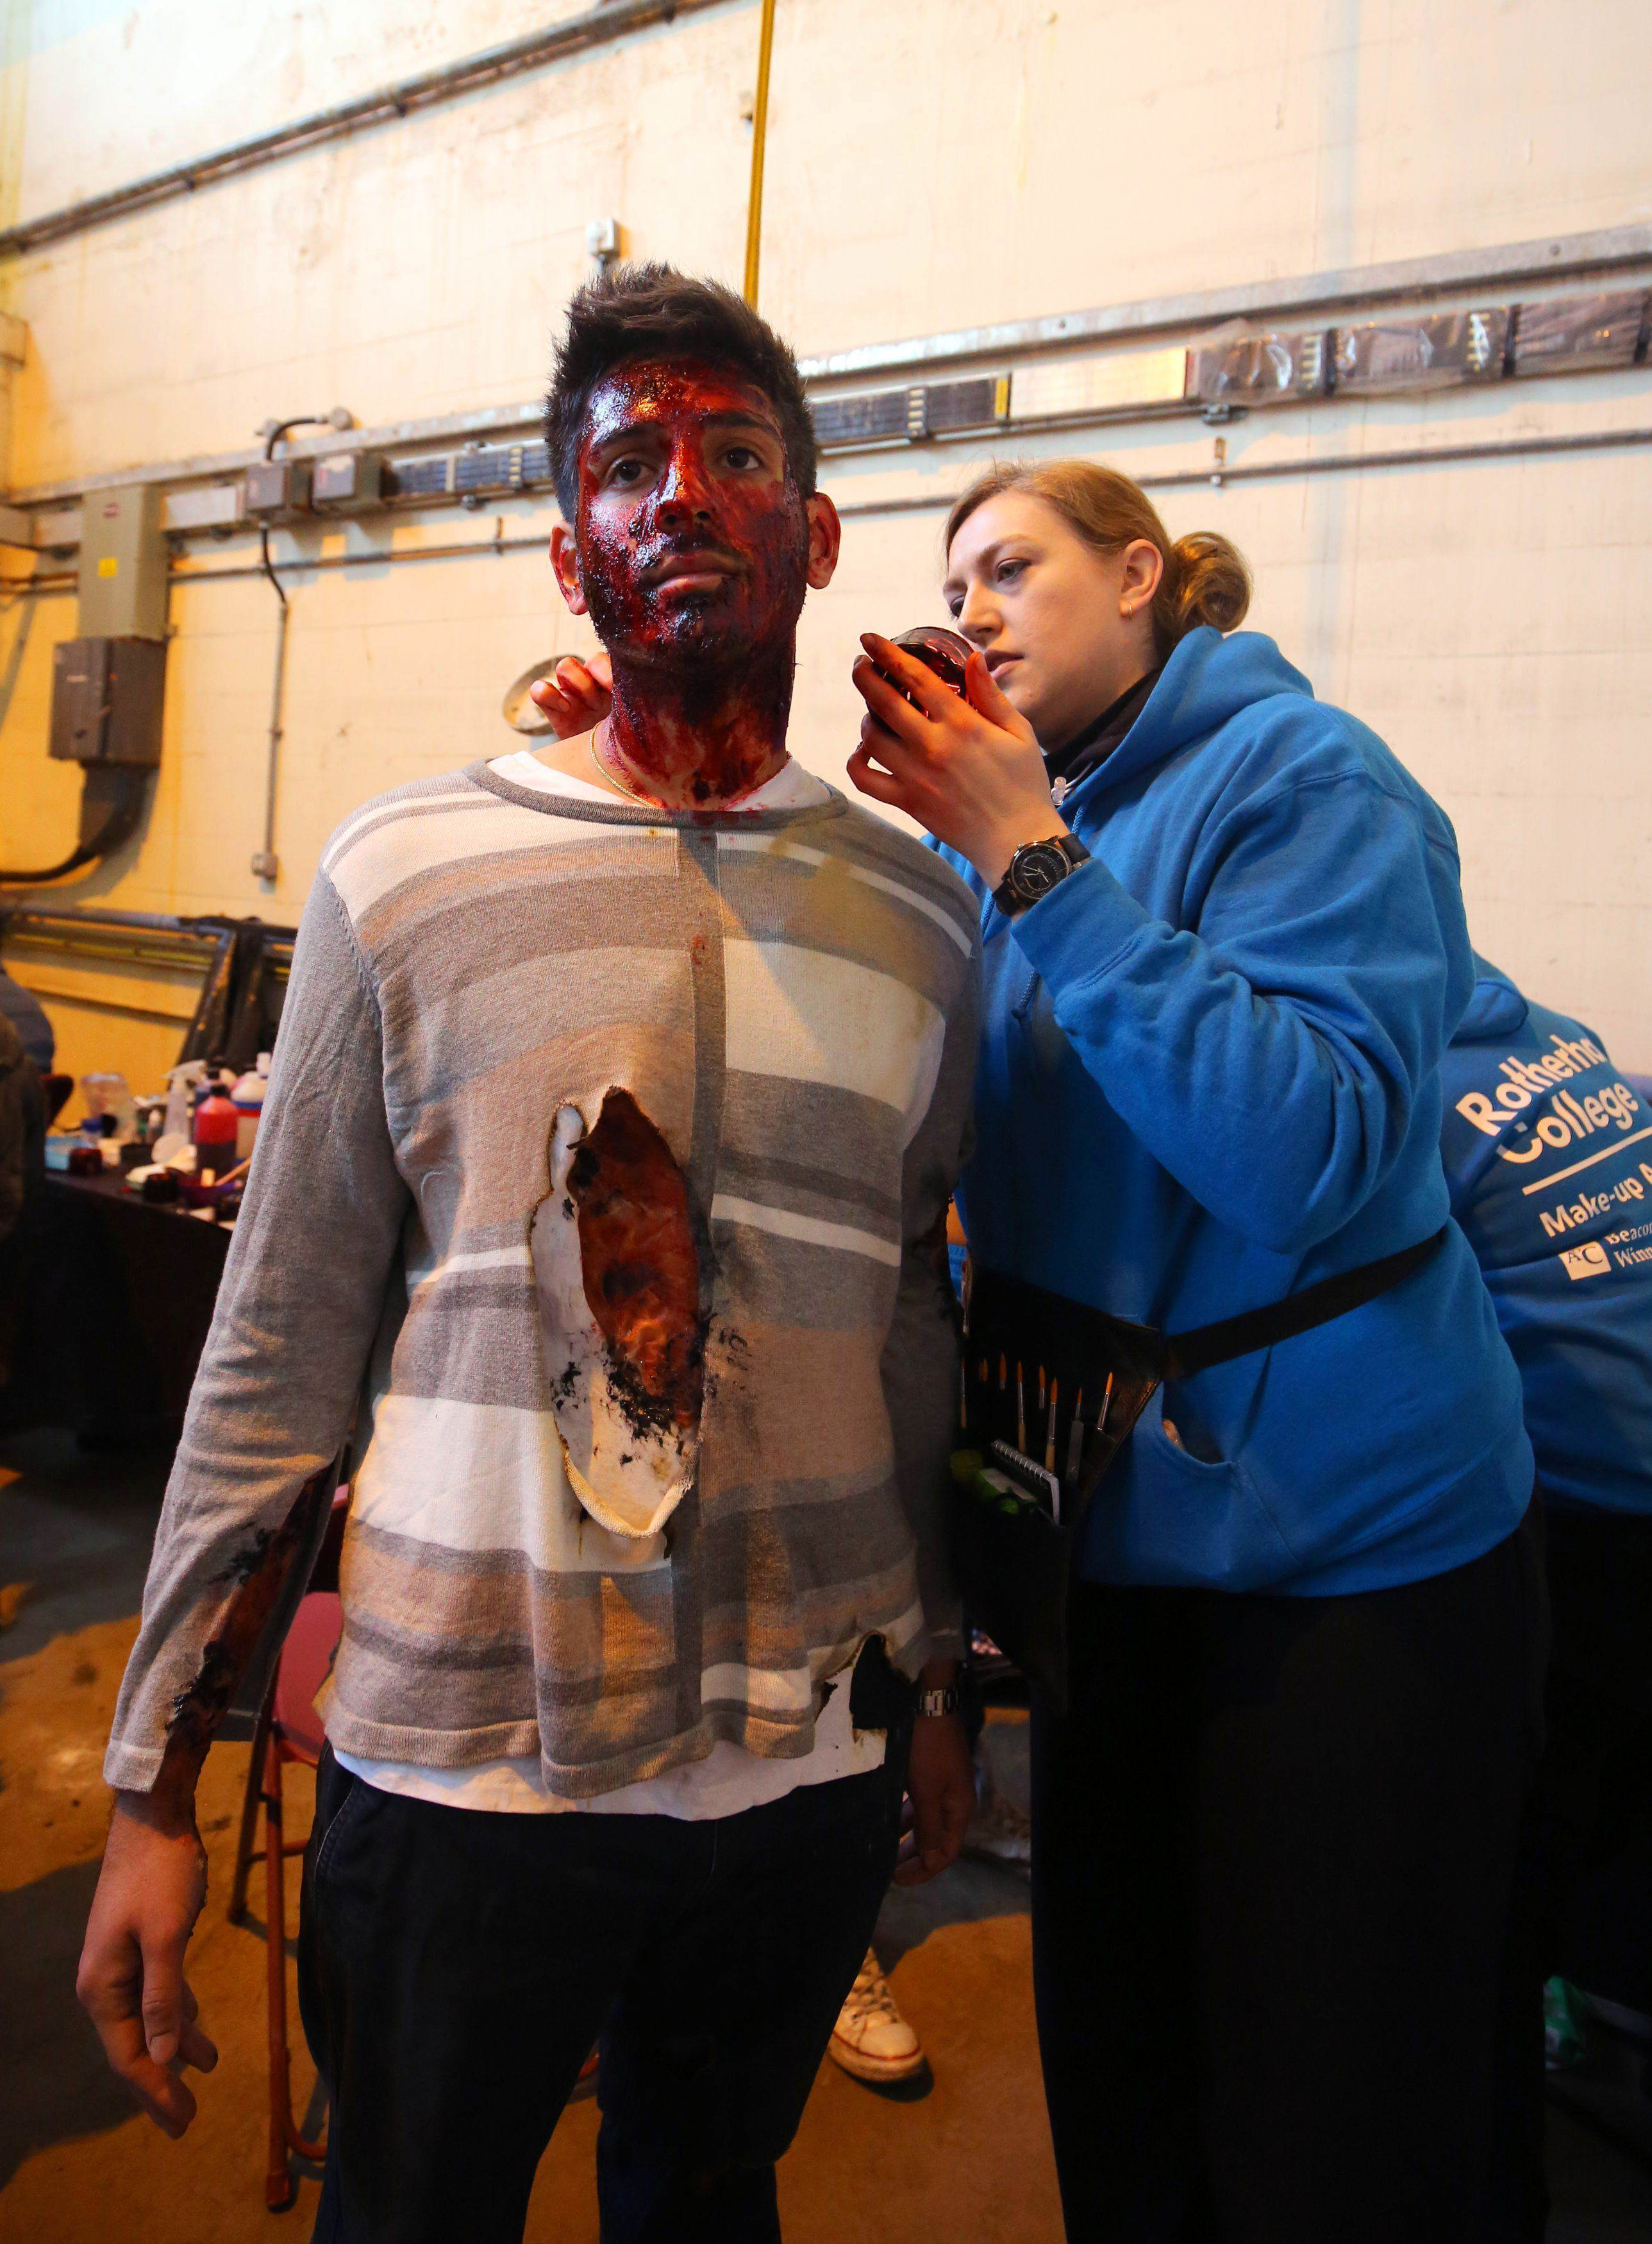 Europes Biggest Ever Disaster Simulation Is Truly Terrifying makeup